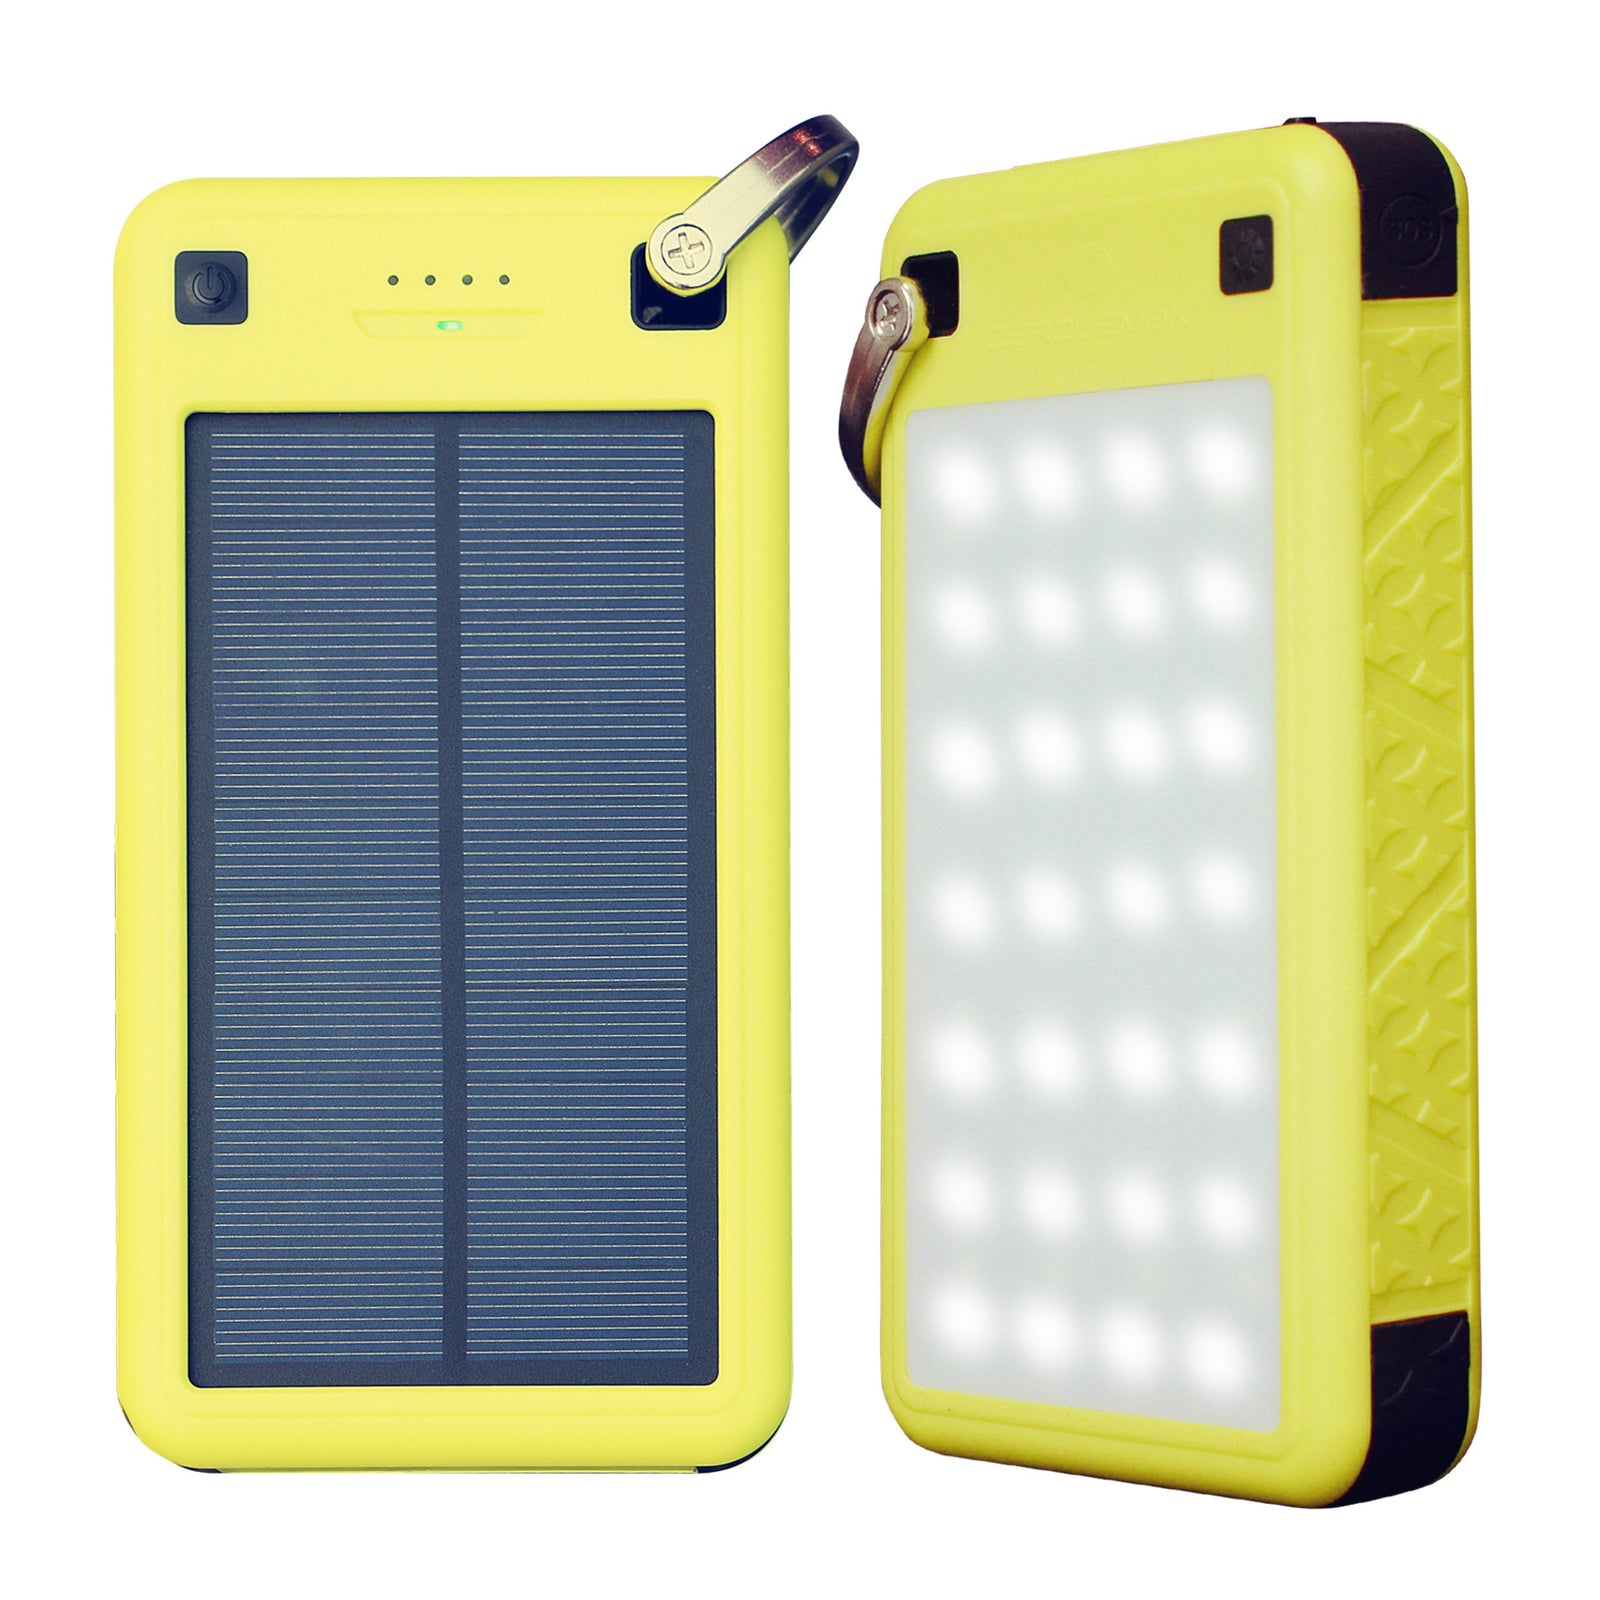 Solarjuice Portable Charger 26800mah Shipping To Us Only Circuit Cellphone Using Bike Battery Solar